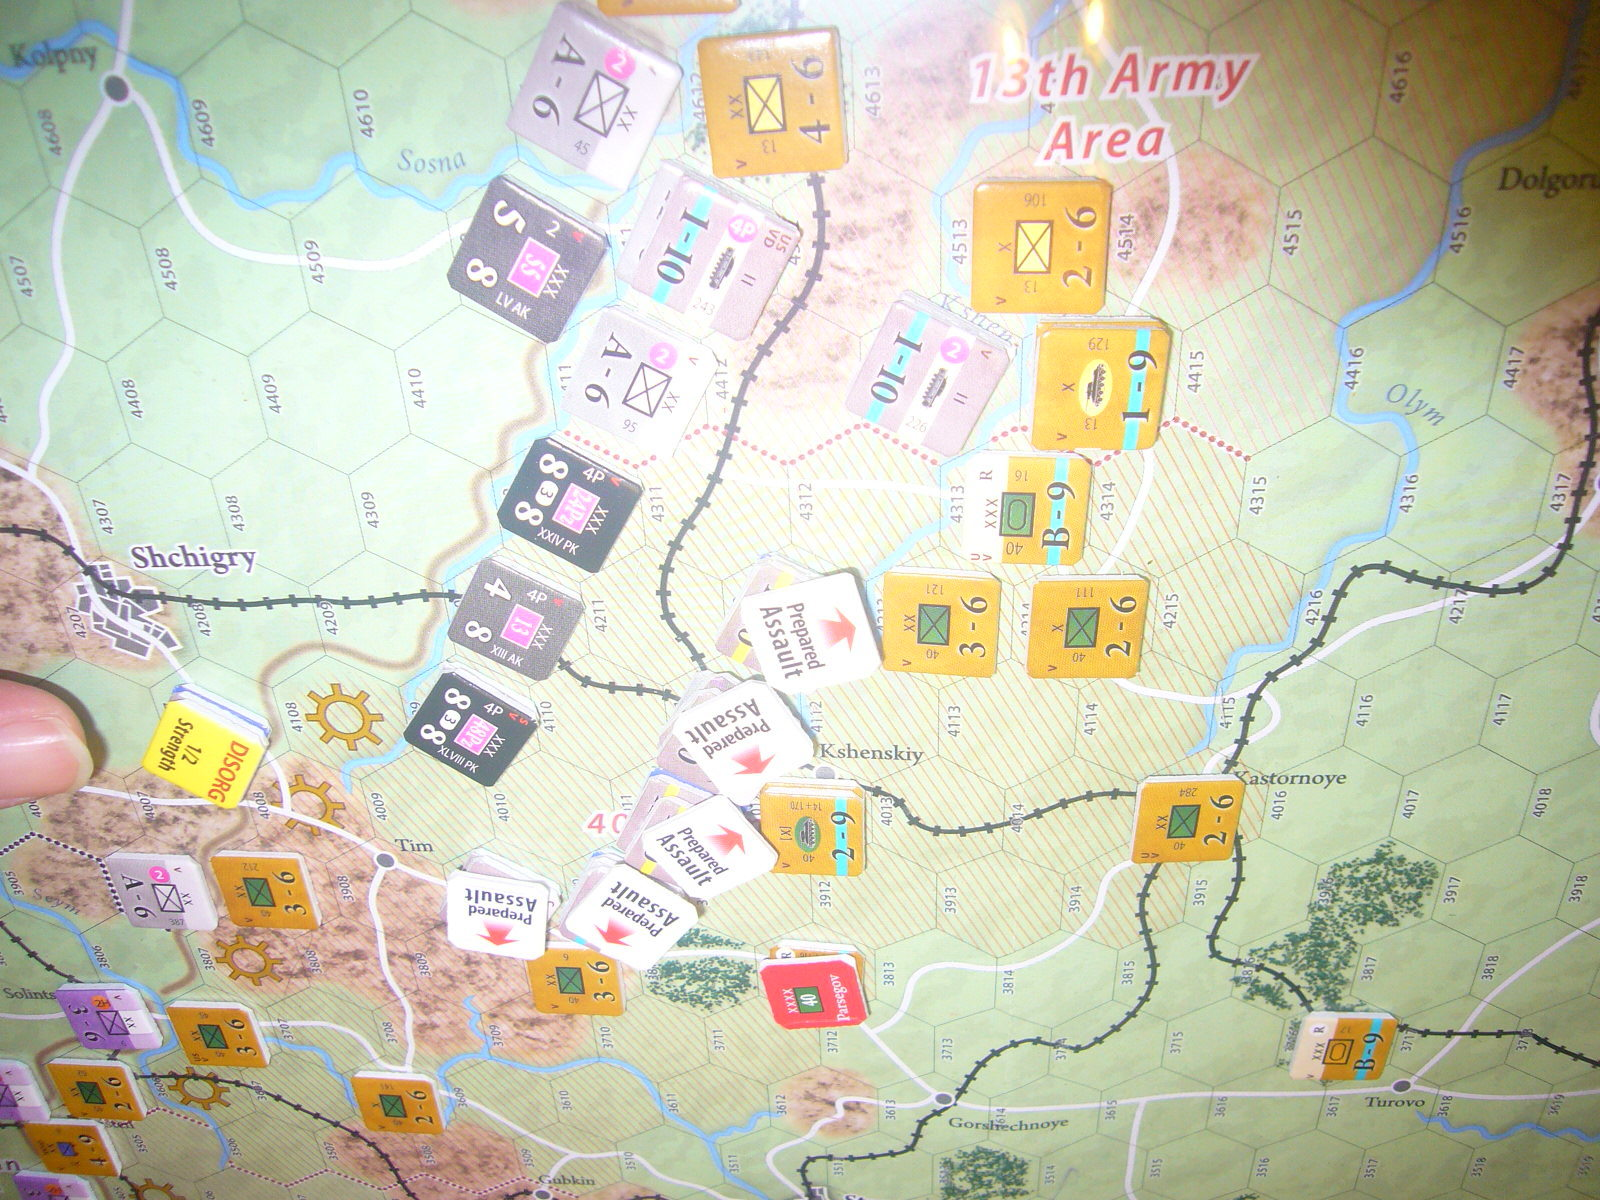 (Compass)FALL BLAU: Army Group South, June to December 1942 青作戦:史実の7月キャンペーンお試し5人戦❶_b0173672_16240181.jpg